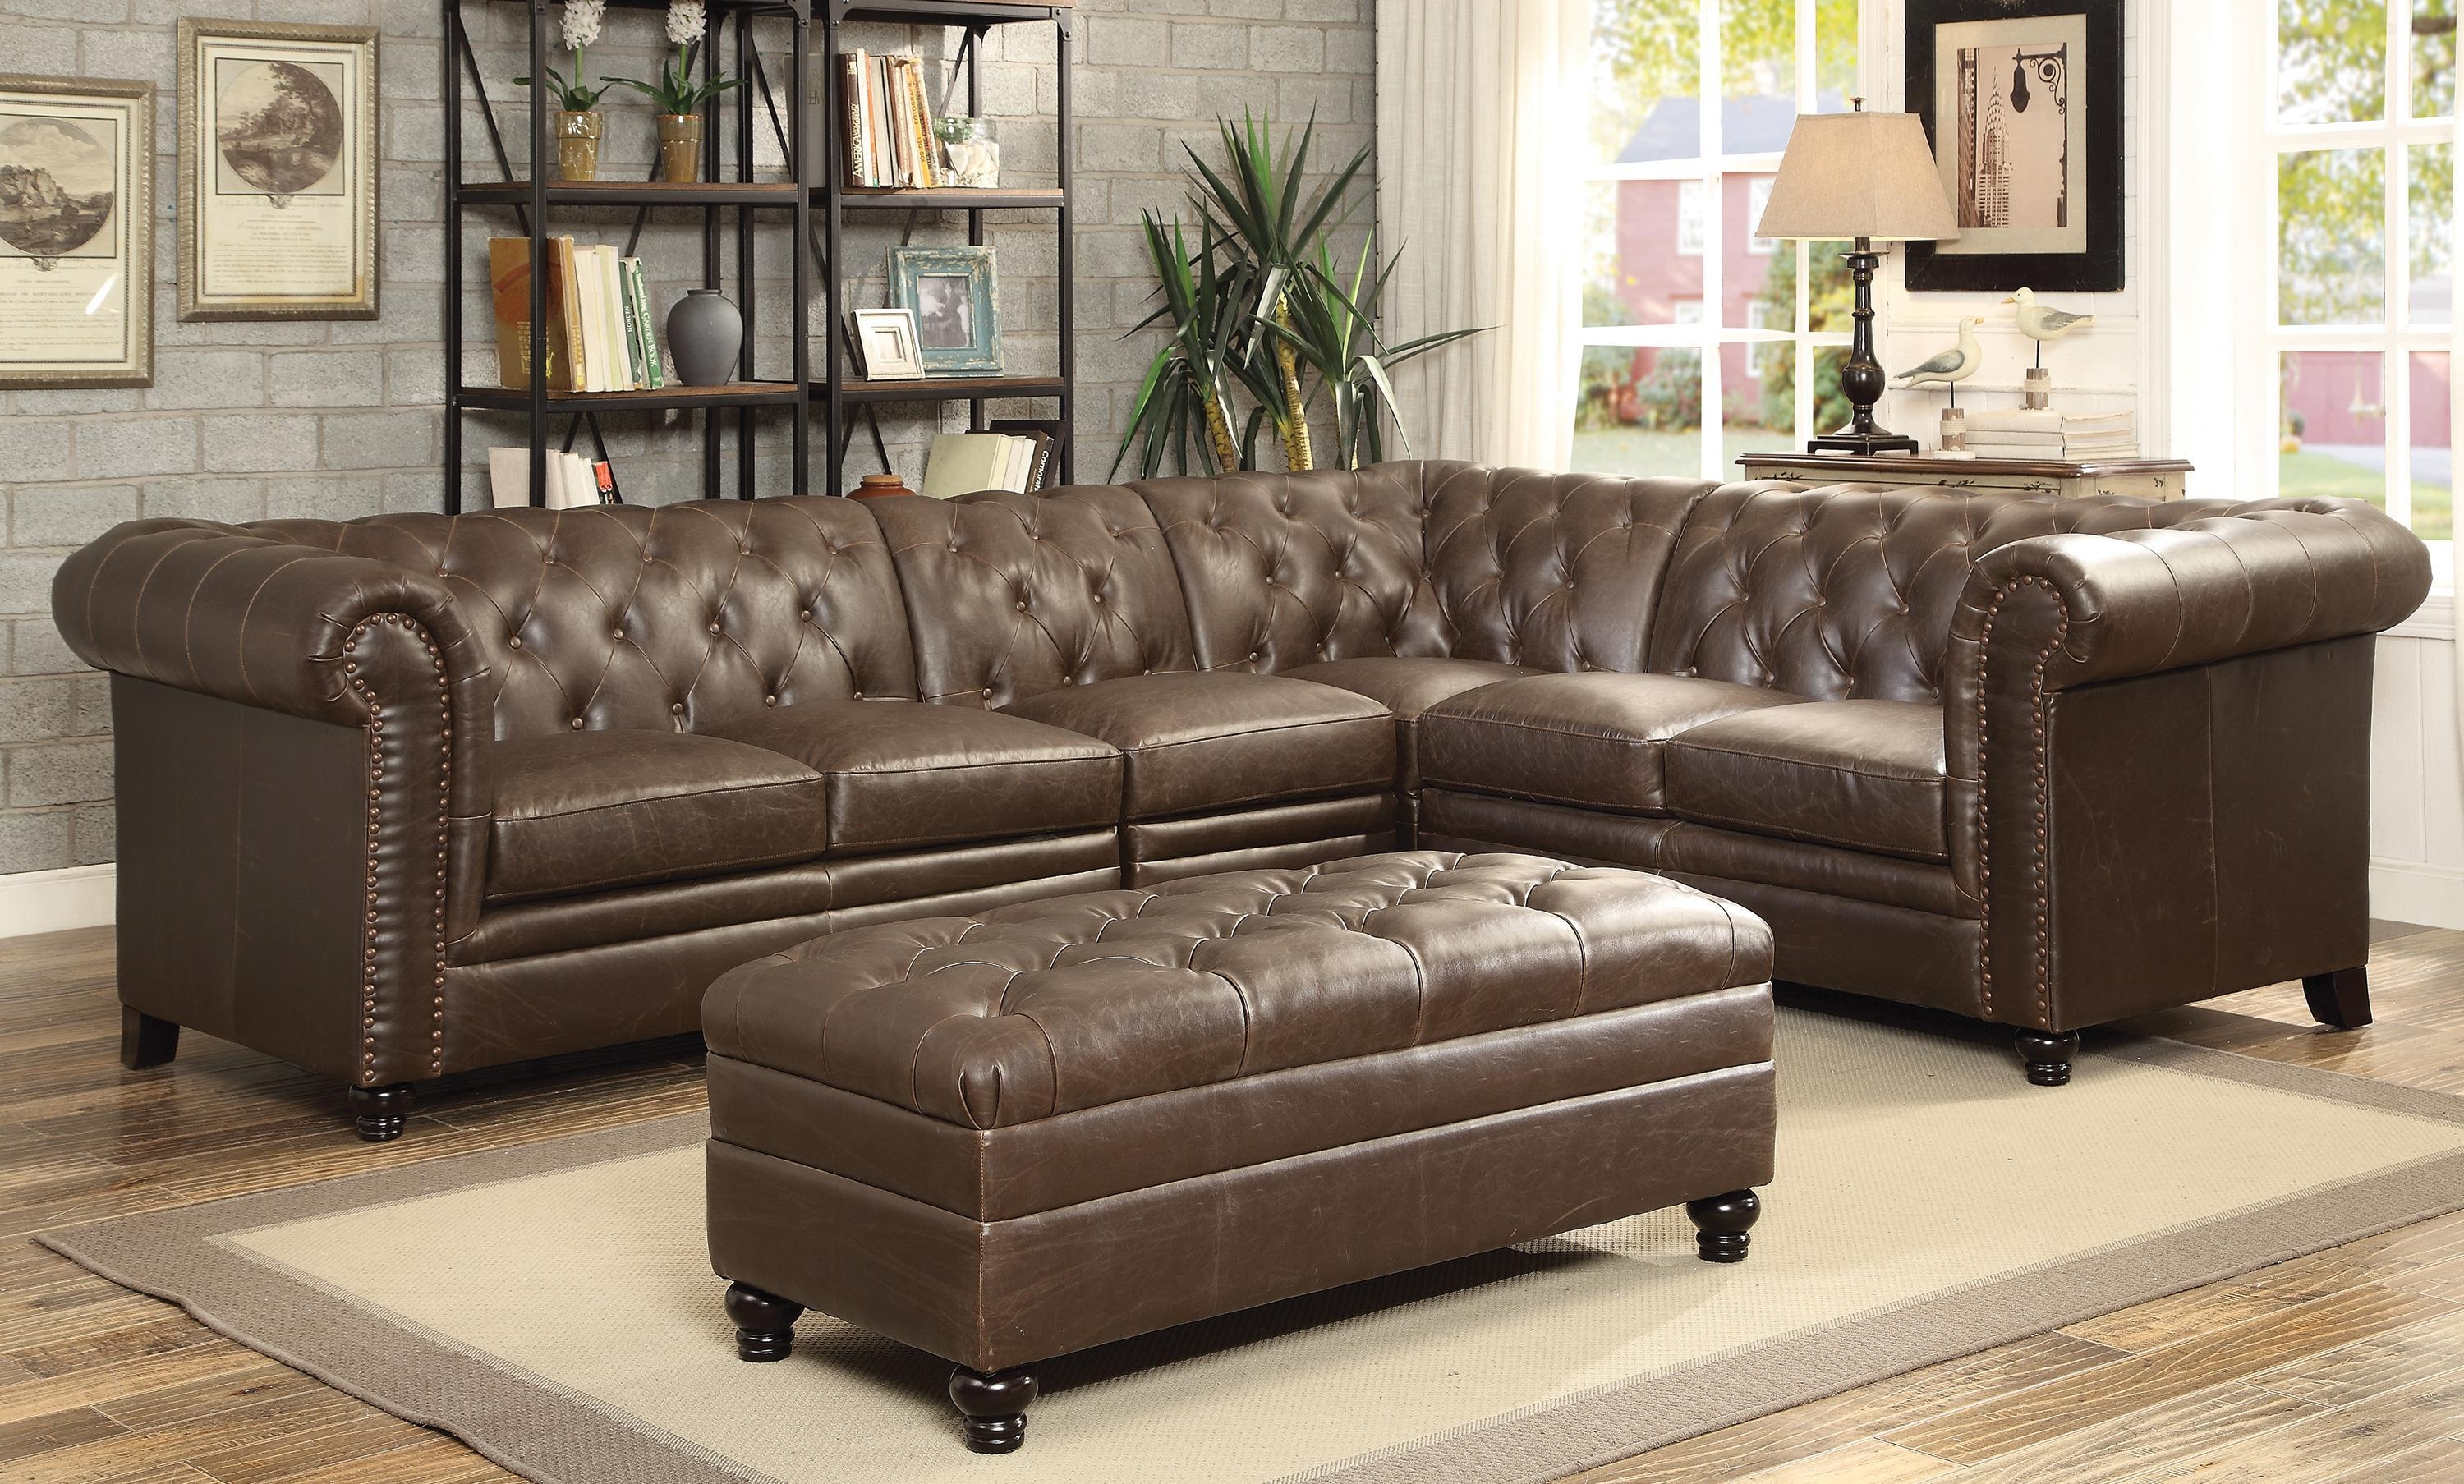 Sofa: Leather Sectional With Chaise | Tufted Sectional Sofa Pertaining To Tufted Sectional Sofa With Chaise (Image 11 of 20)